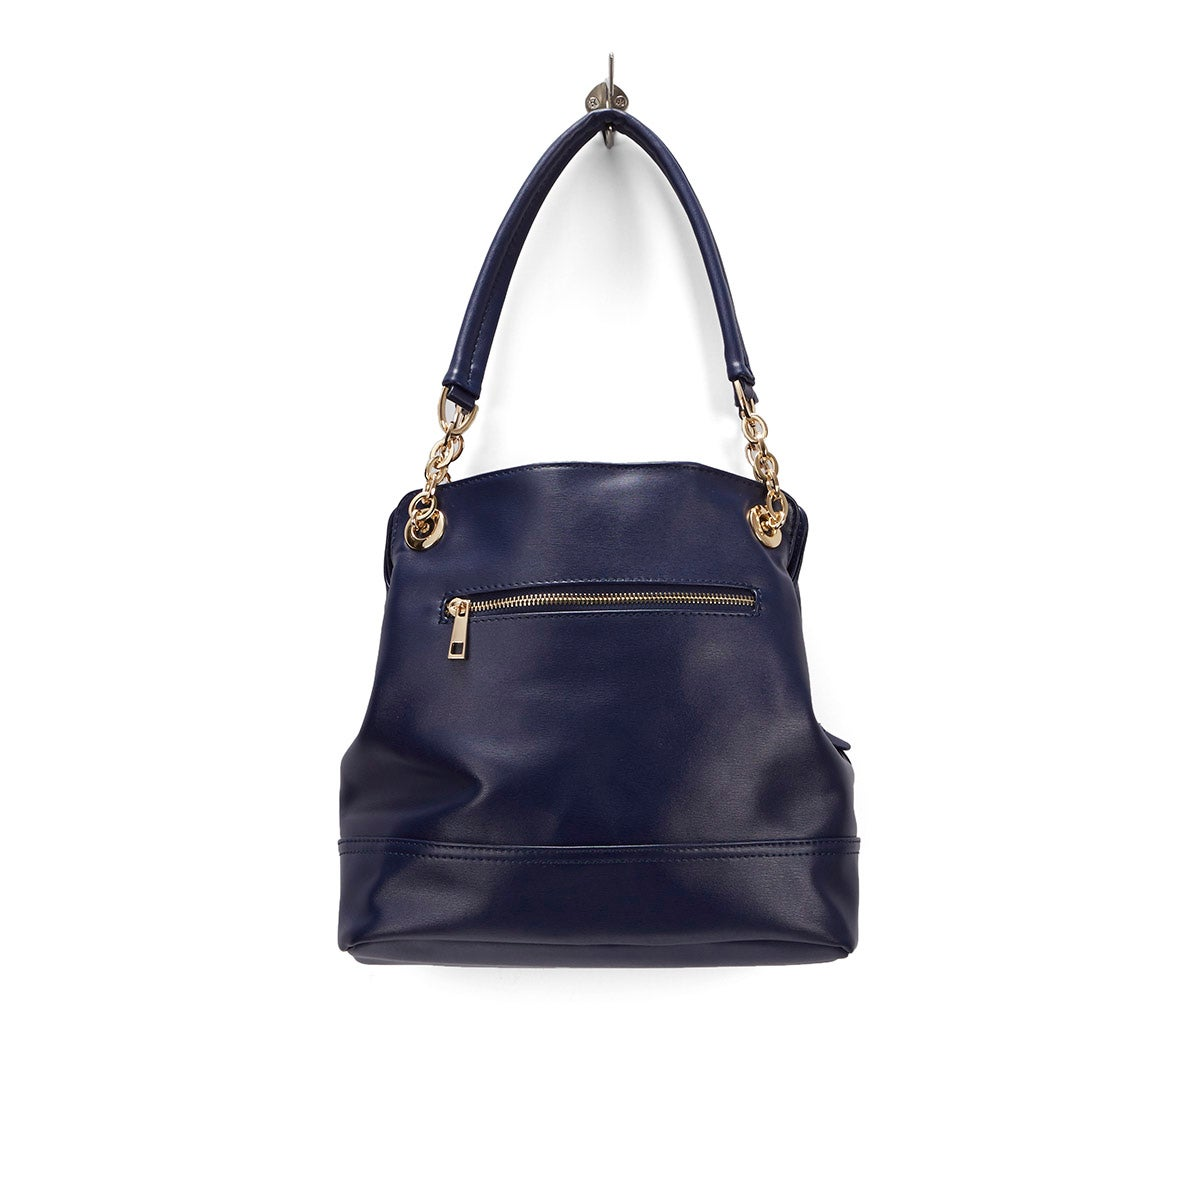 Lds Chain navy double strap shoulder bag